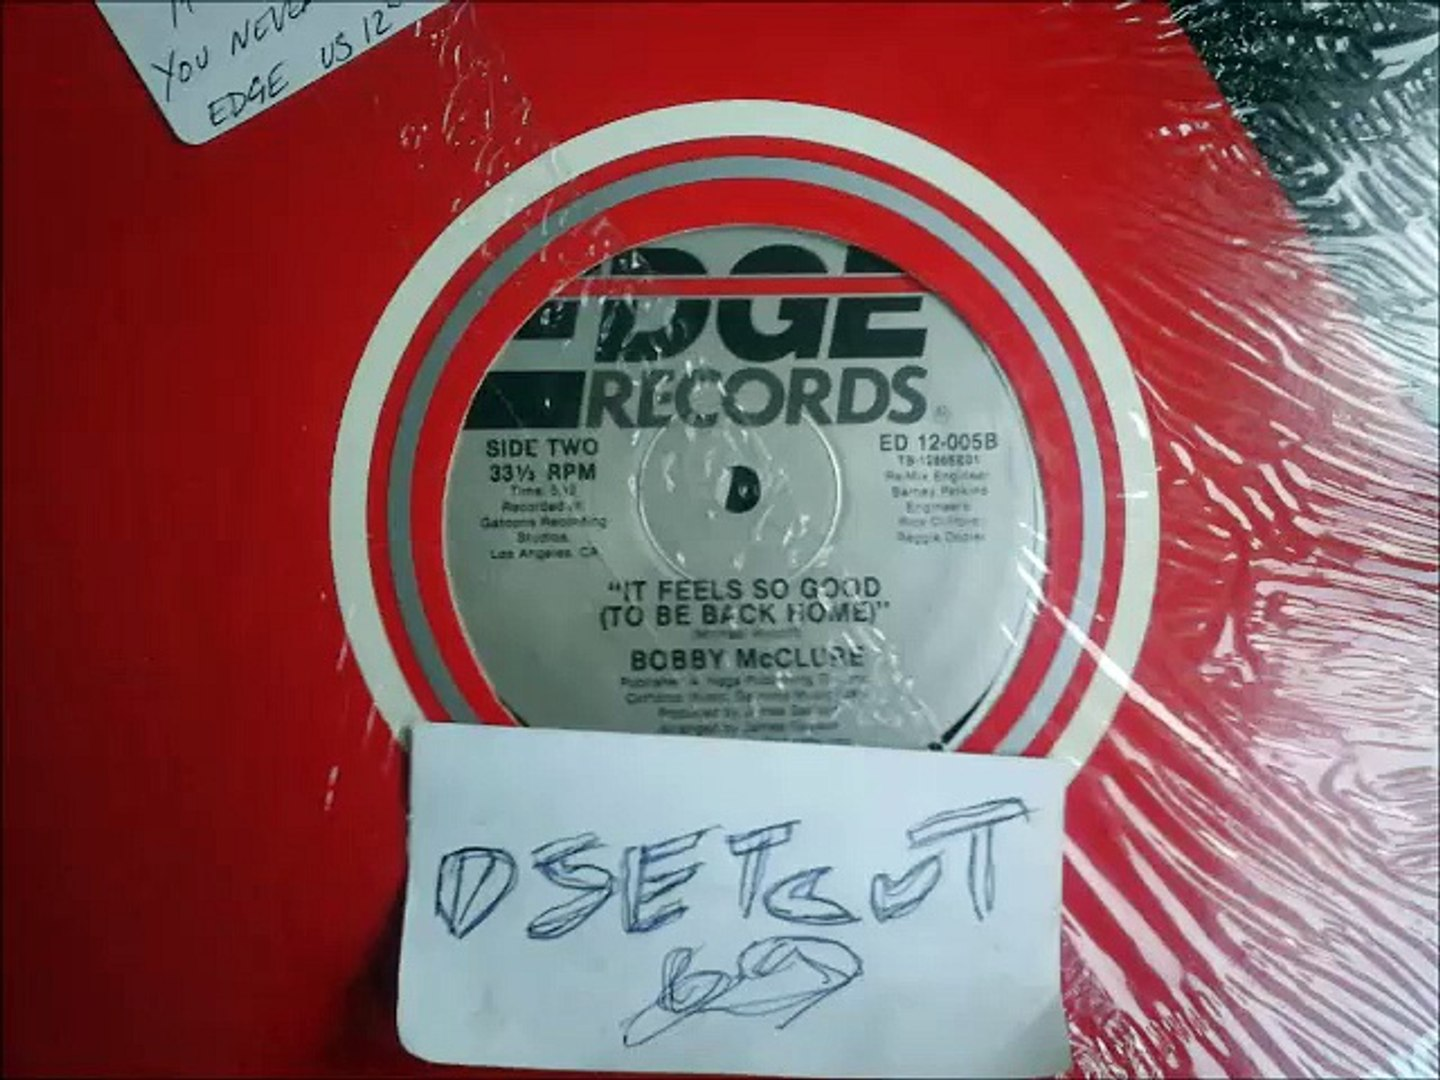 BOBBY McCLURE -IT FEELS SO GOOD(TO BE BACK HOME)(RIP ETCUT)EDGE REC 80's